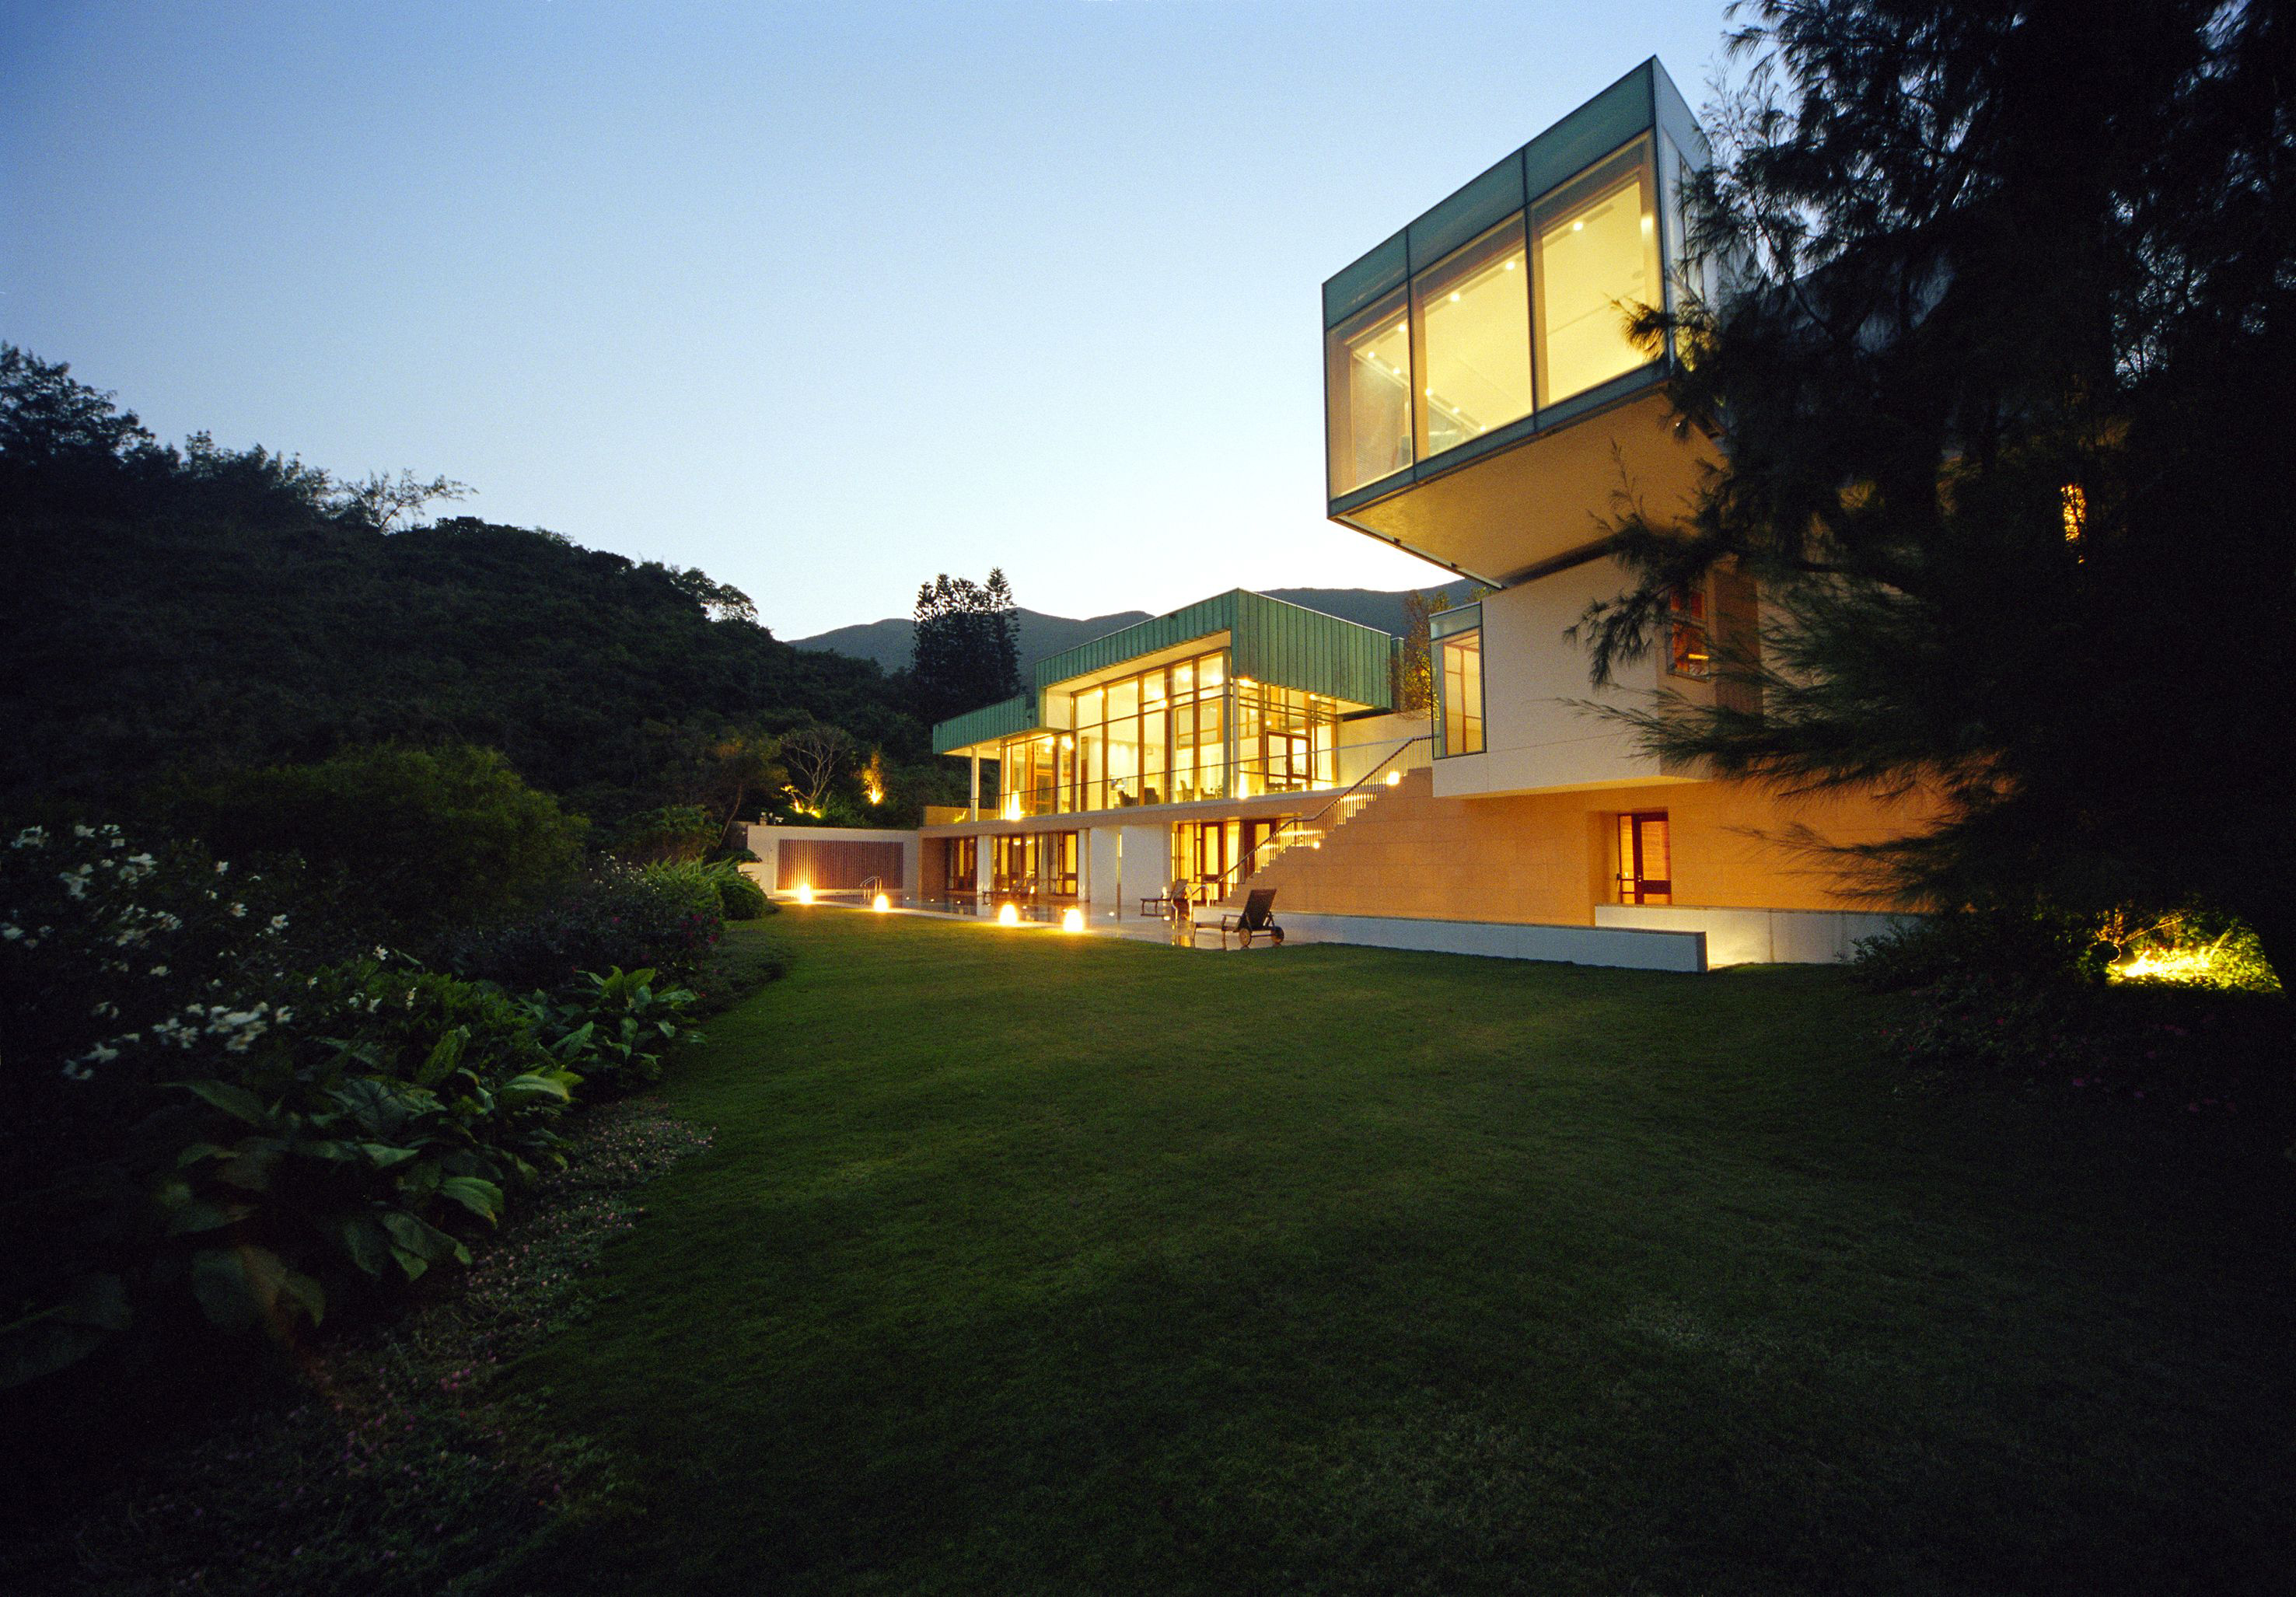 6_Hong-Kong-House_1_041209_1339_21rgb Design House By The Sea on gold house design, harbor house design, sunshine house design, food house design, jungle house design, fishing house design, tys house design, salt house design, man house design, palace house design, home house design, mountain range house design, pretty house design, space house design, ground house design, biosphere house design, hotel house design, beach house design, sports house design, cave house design,